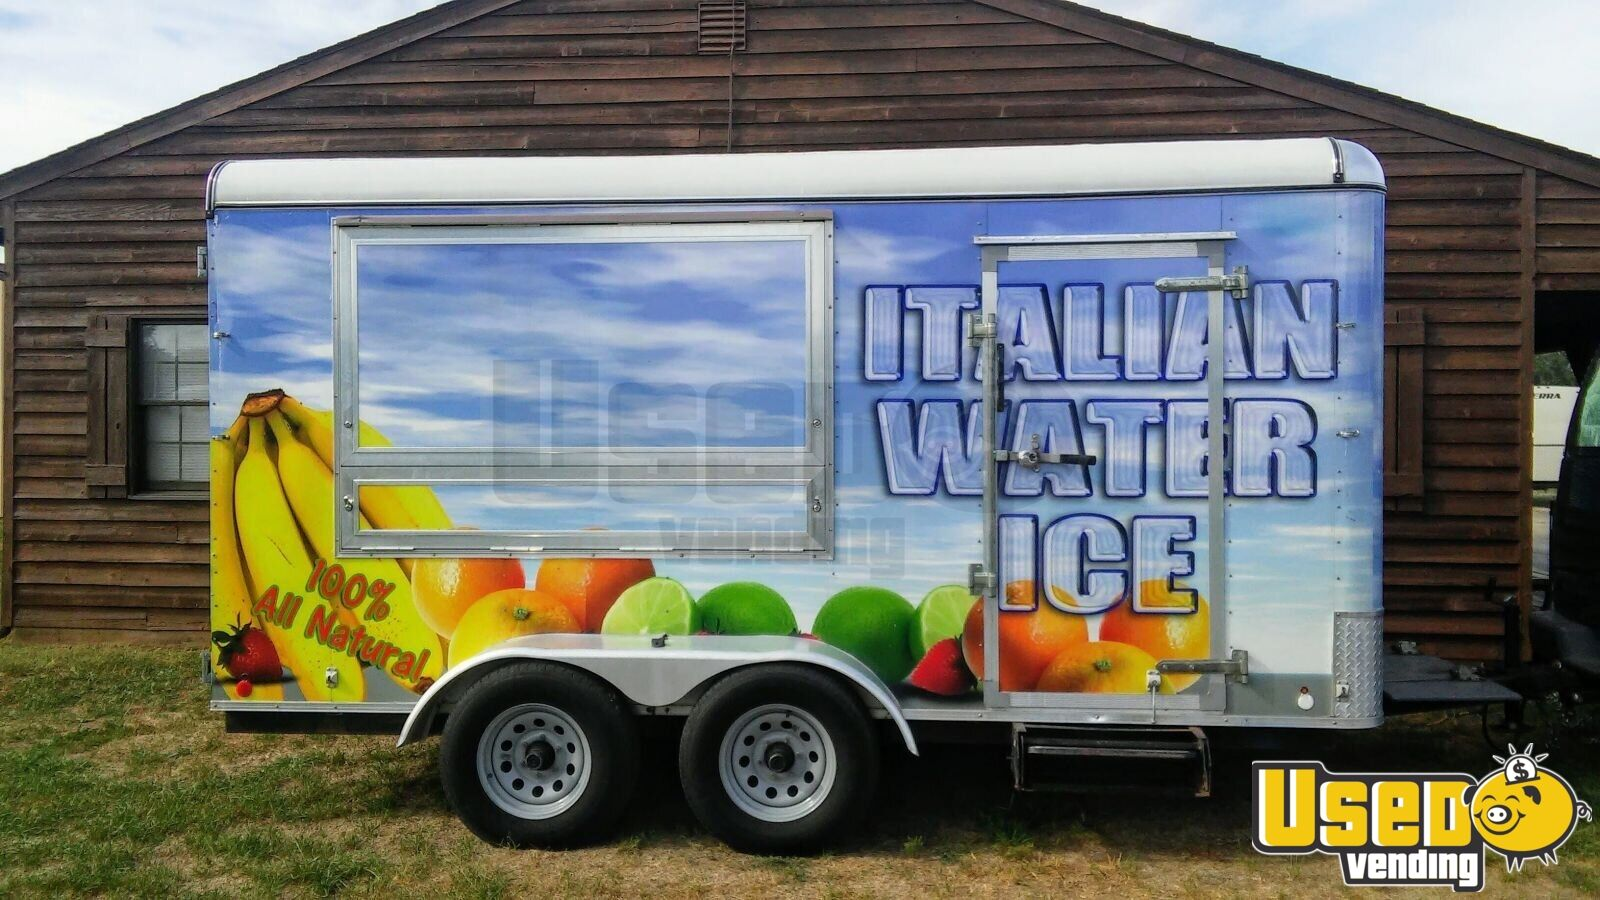 2017 Shaved Ice Concession Trailer Concession Trailer Concession Window Florida for Sale - 2